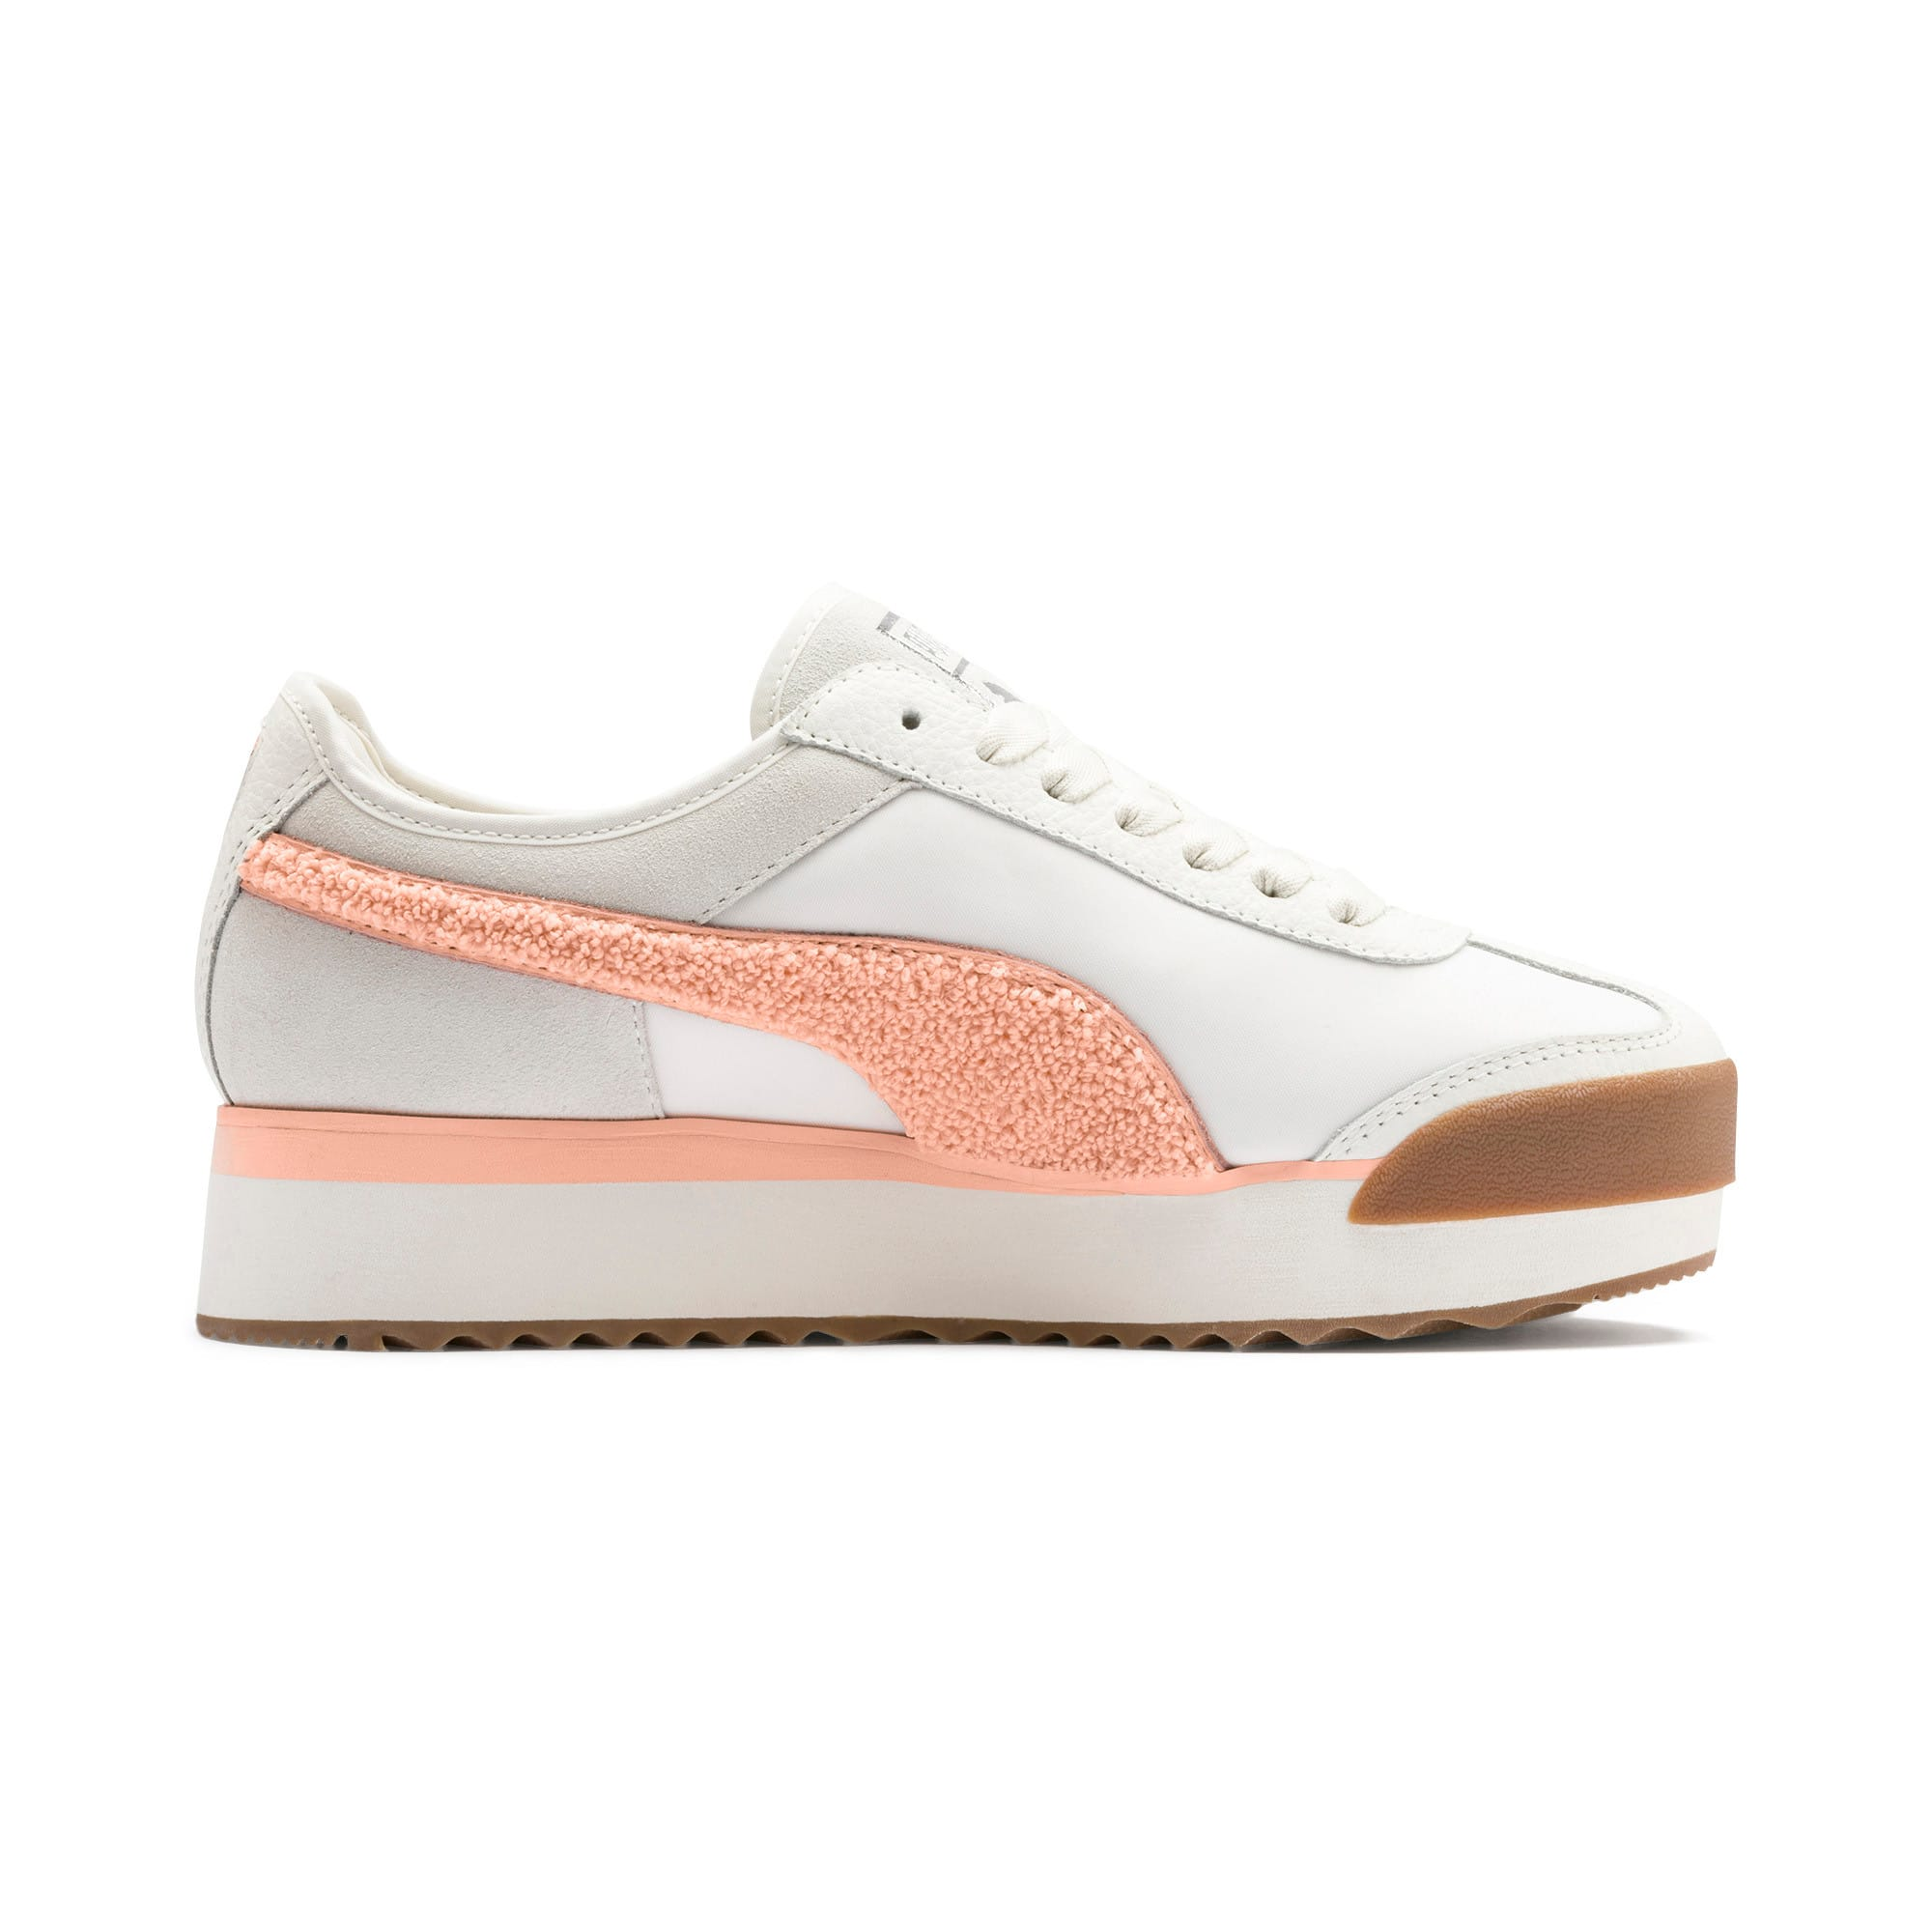 Thumbnail 7 of Roma Amor Heritage Women's Trainers, Marshmallow-Peach Parfait, medium